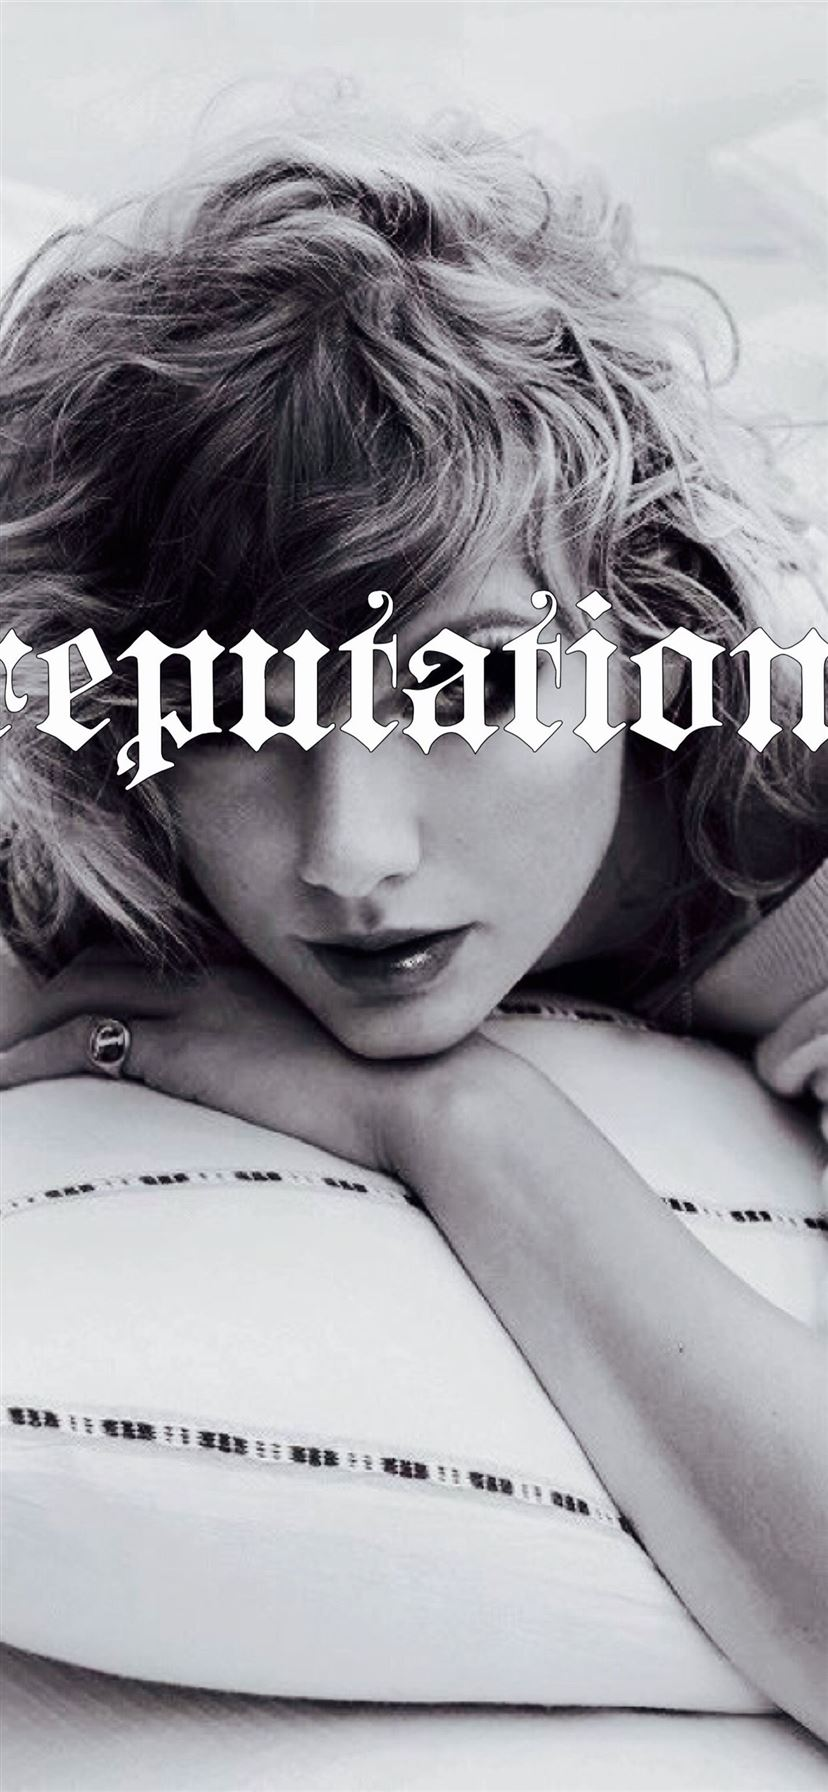 reputation taylor swift are you ready for it ready iphone 11 wallpapers free download reputation taylor swift are you ready